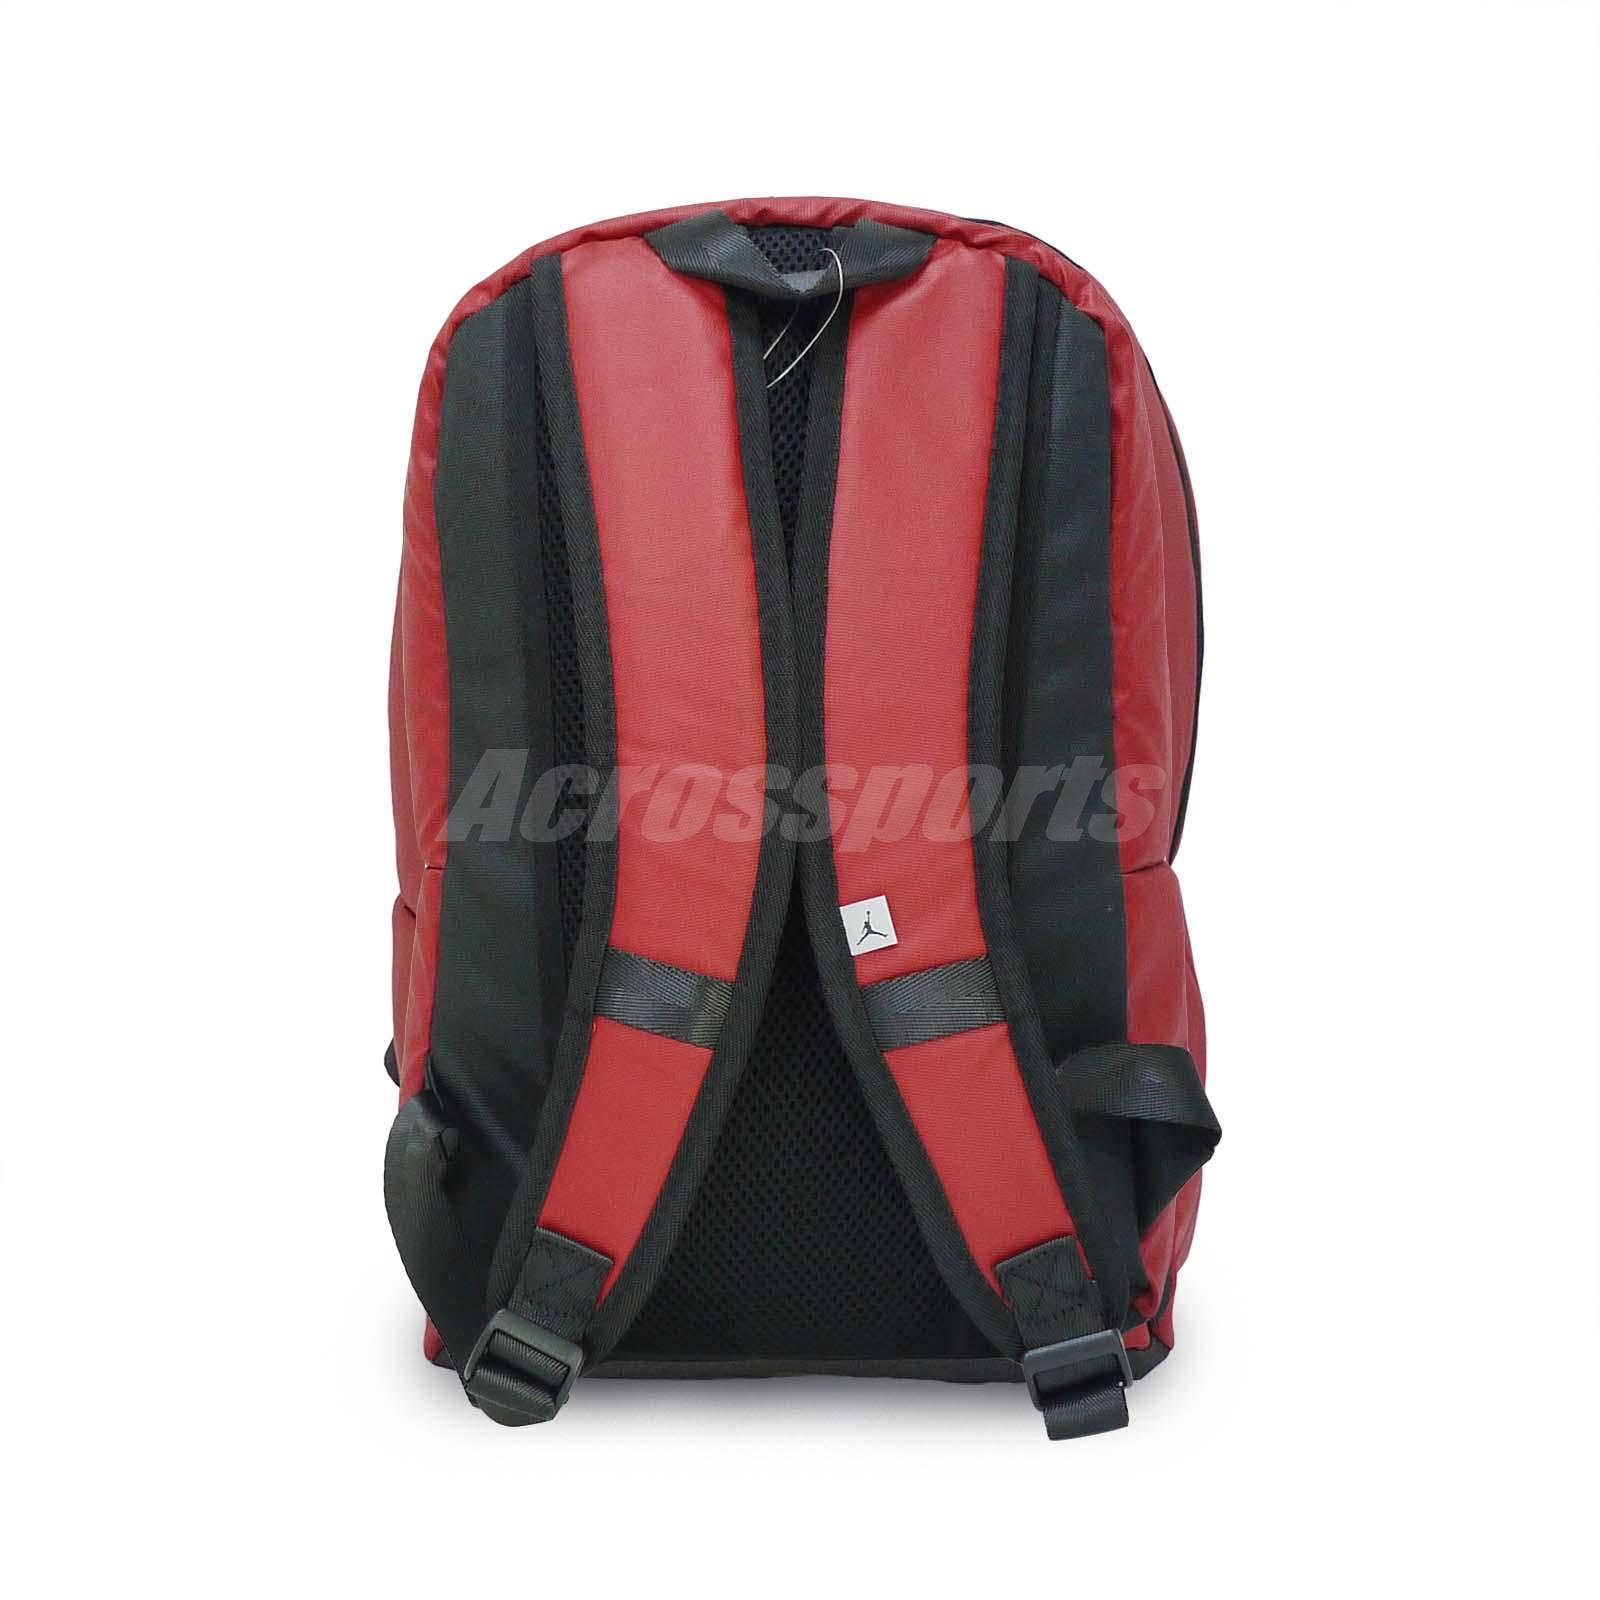 e8513979b02c99 Details about Nike Air Jordan Alias Mini Pack Red Laptop Water Resistant  Backpack 8A1912-R78